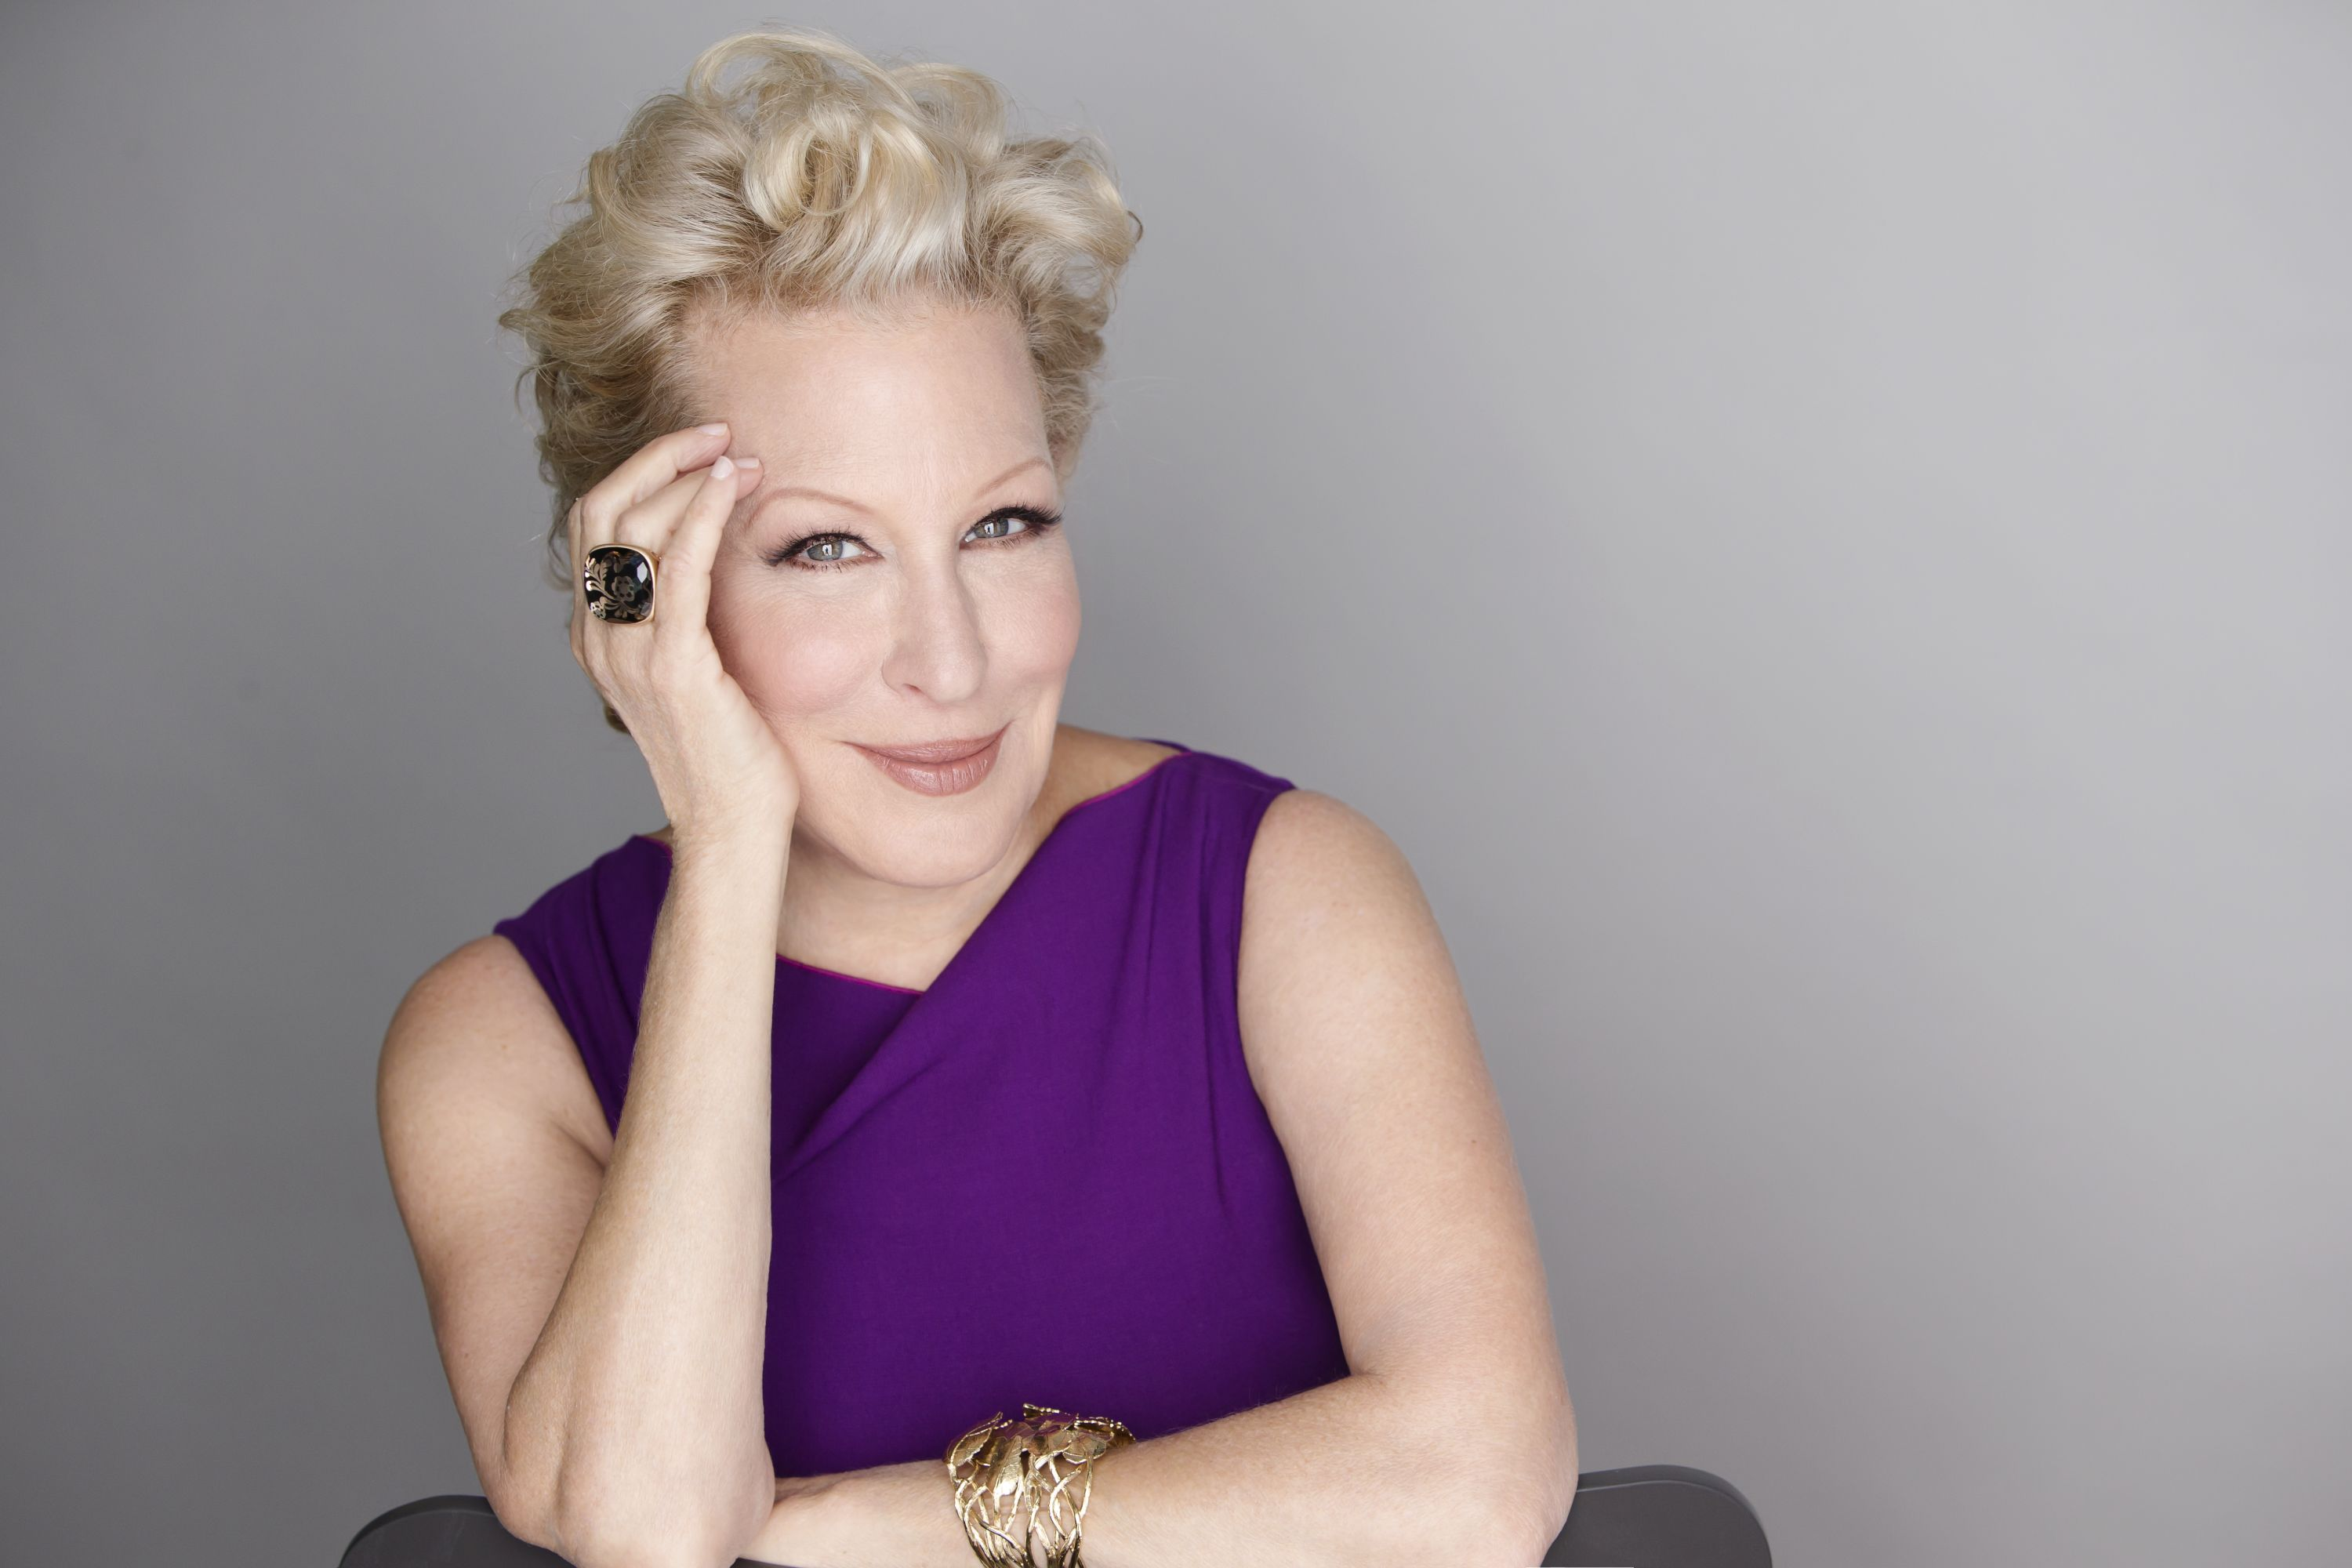 Bette Midler Body Measurement